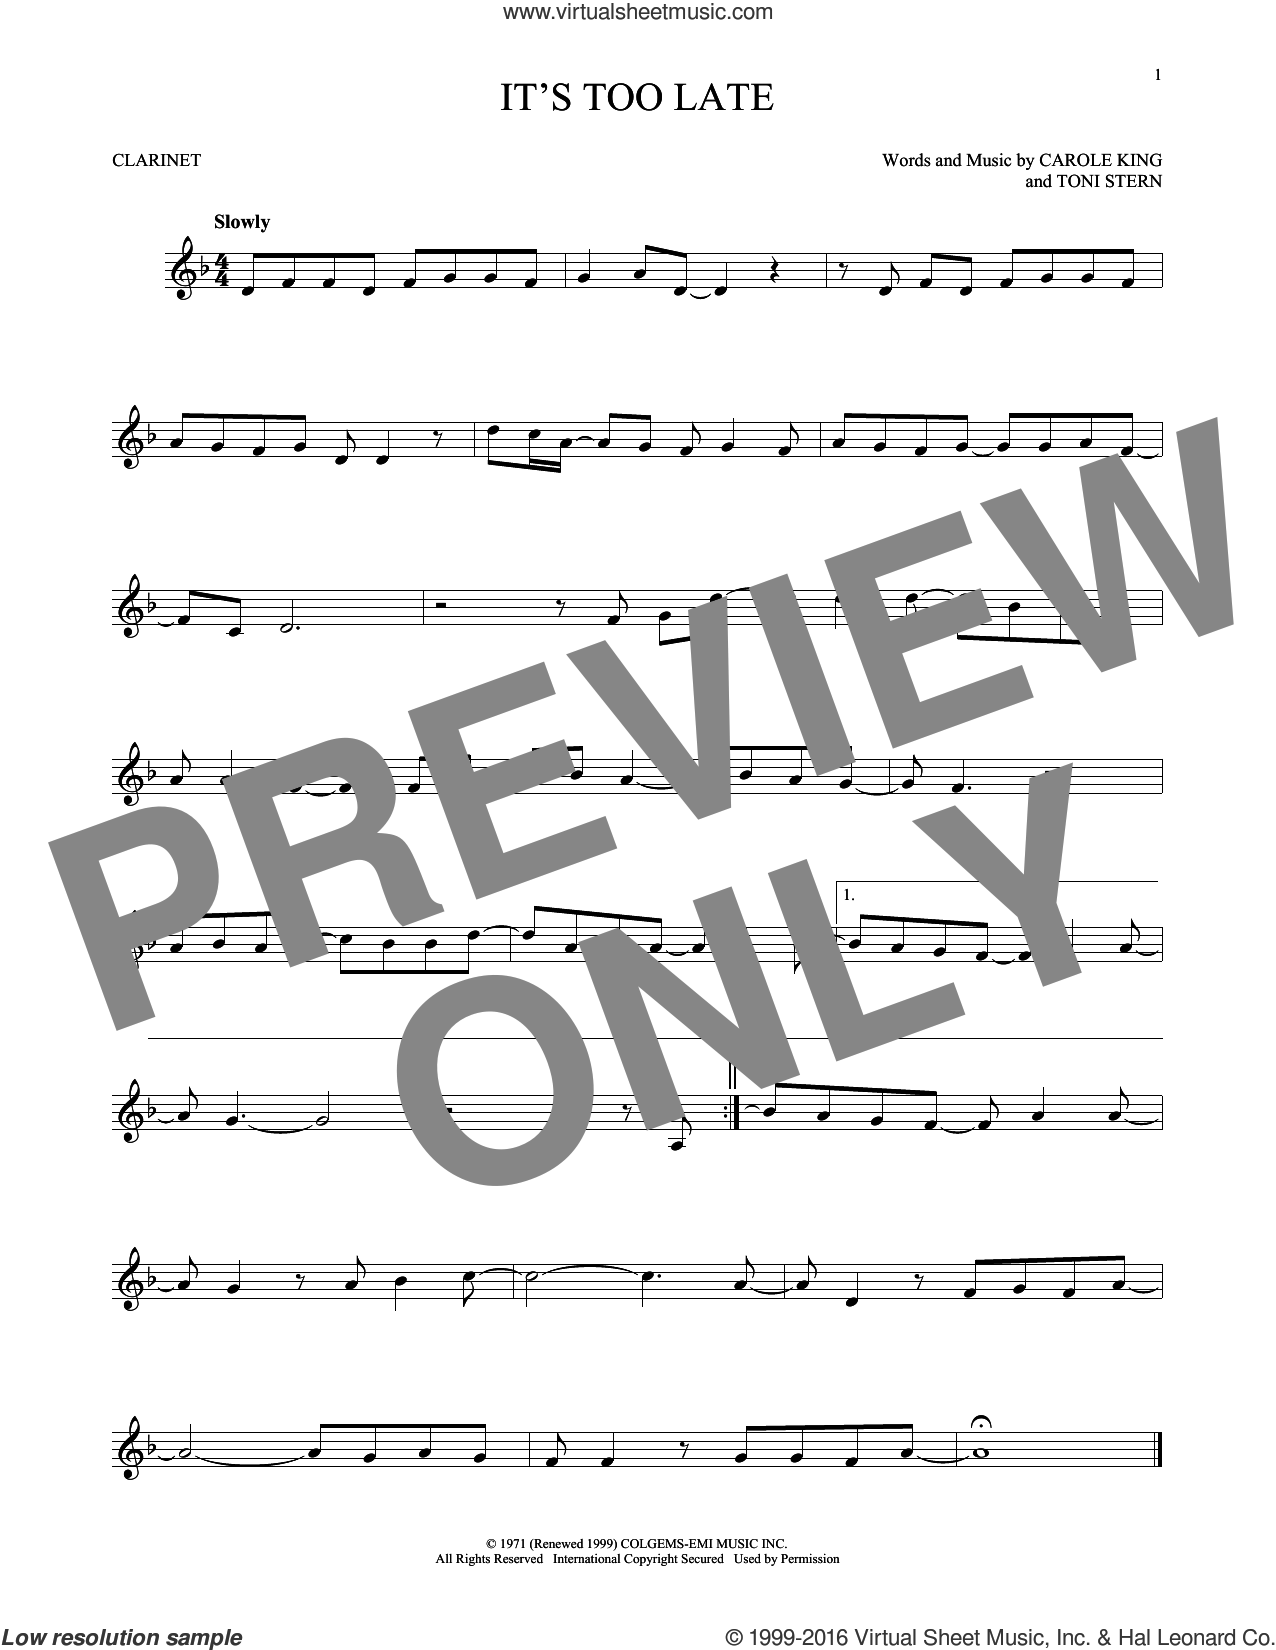 It's Too Late sheet music for clarinet solo by Toni Stern, Gloria Estefan and Carole King. Score Image Preview.